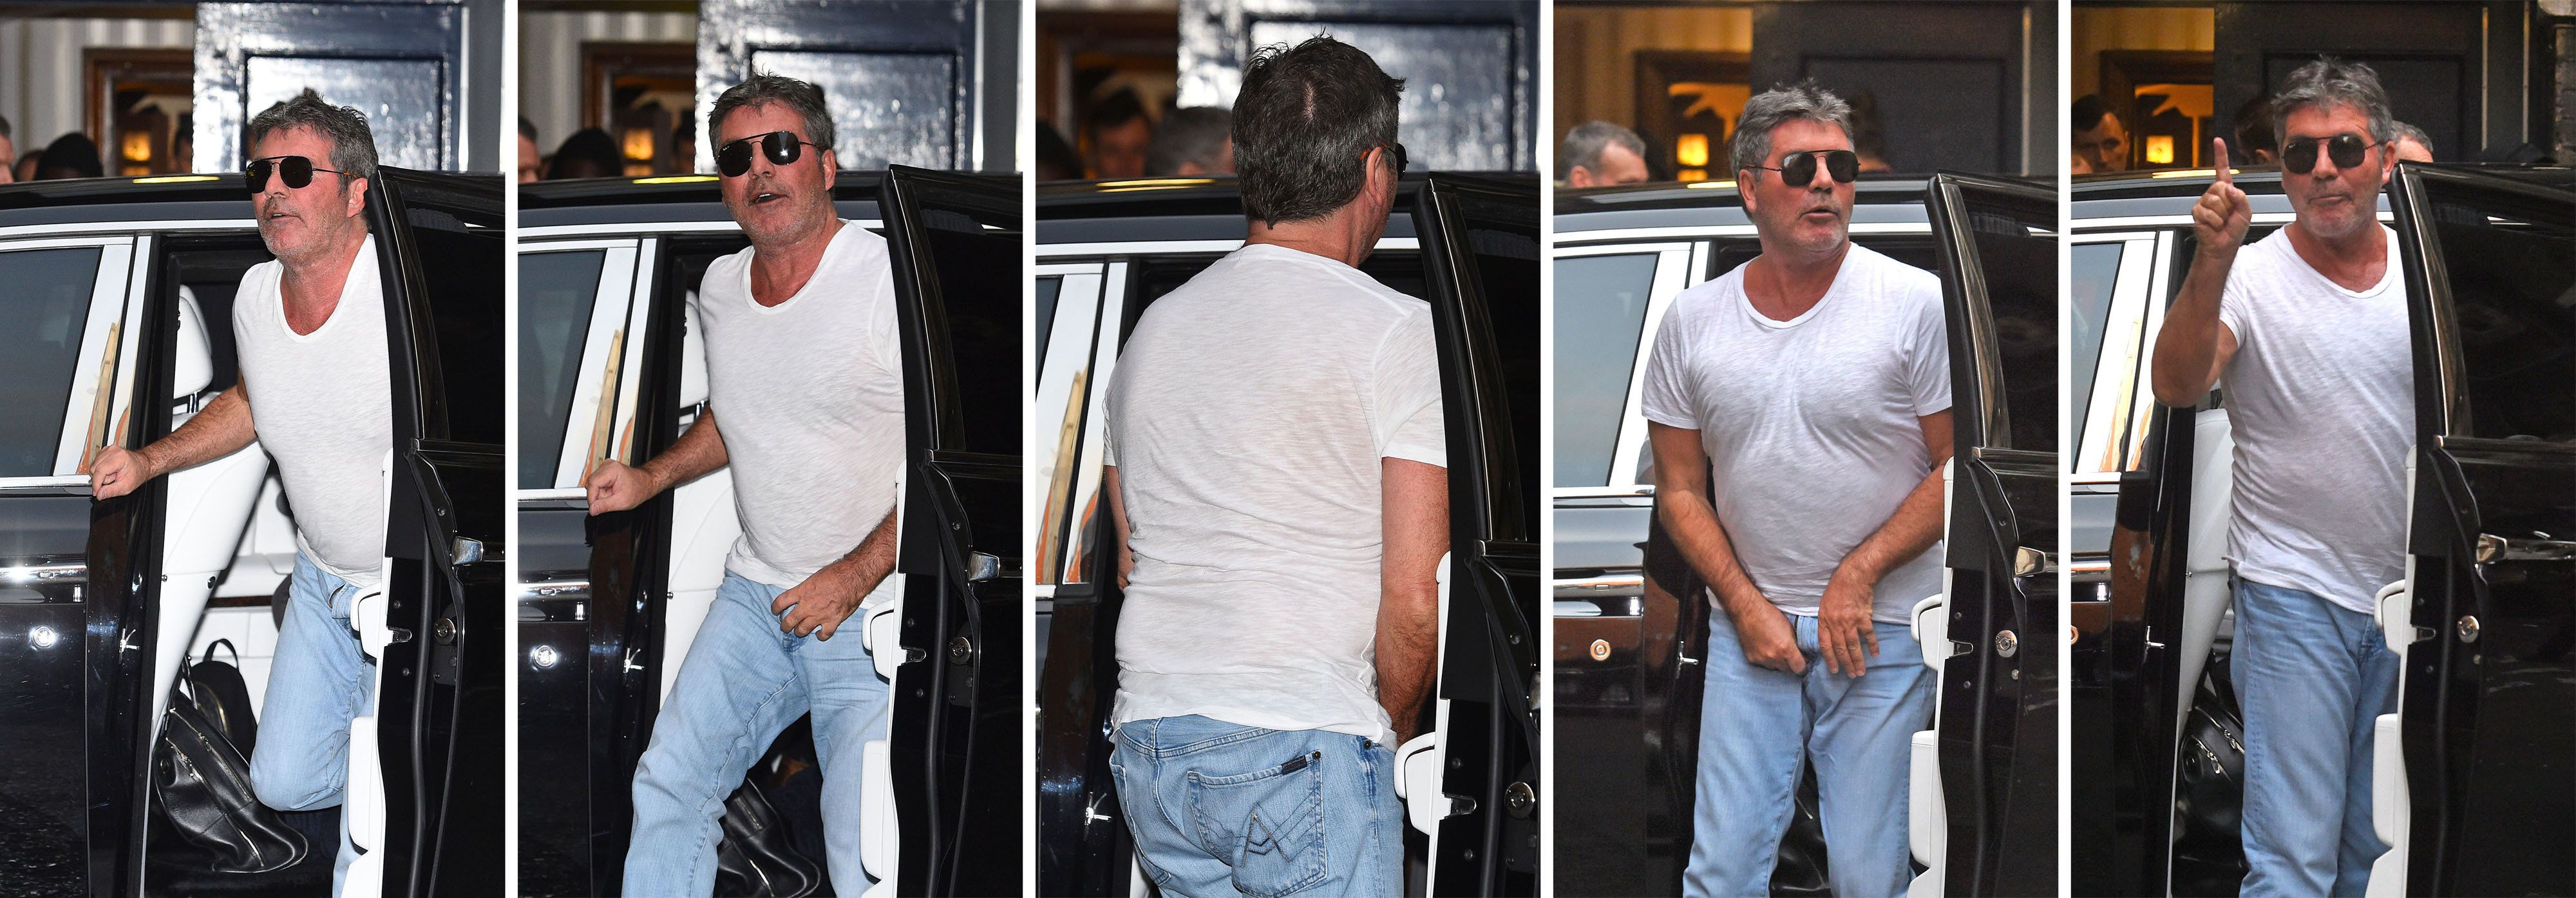 'SHUT UP': Simon Cowell Left Red-Faced At Wardrobe Malfunction As He Arrives For 'Britain's Got